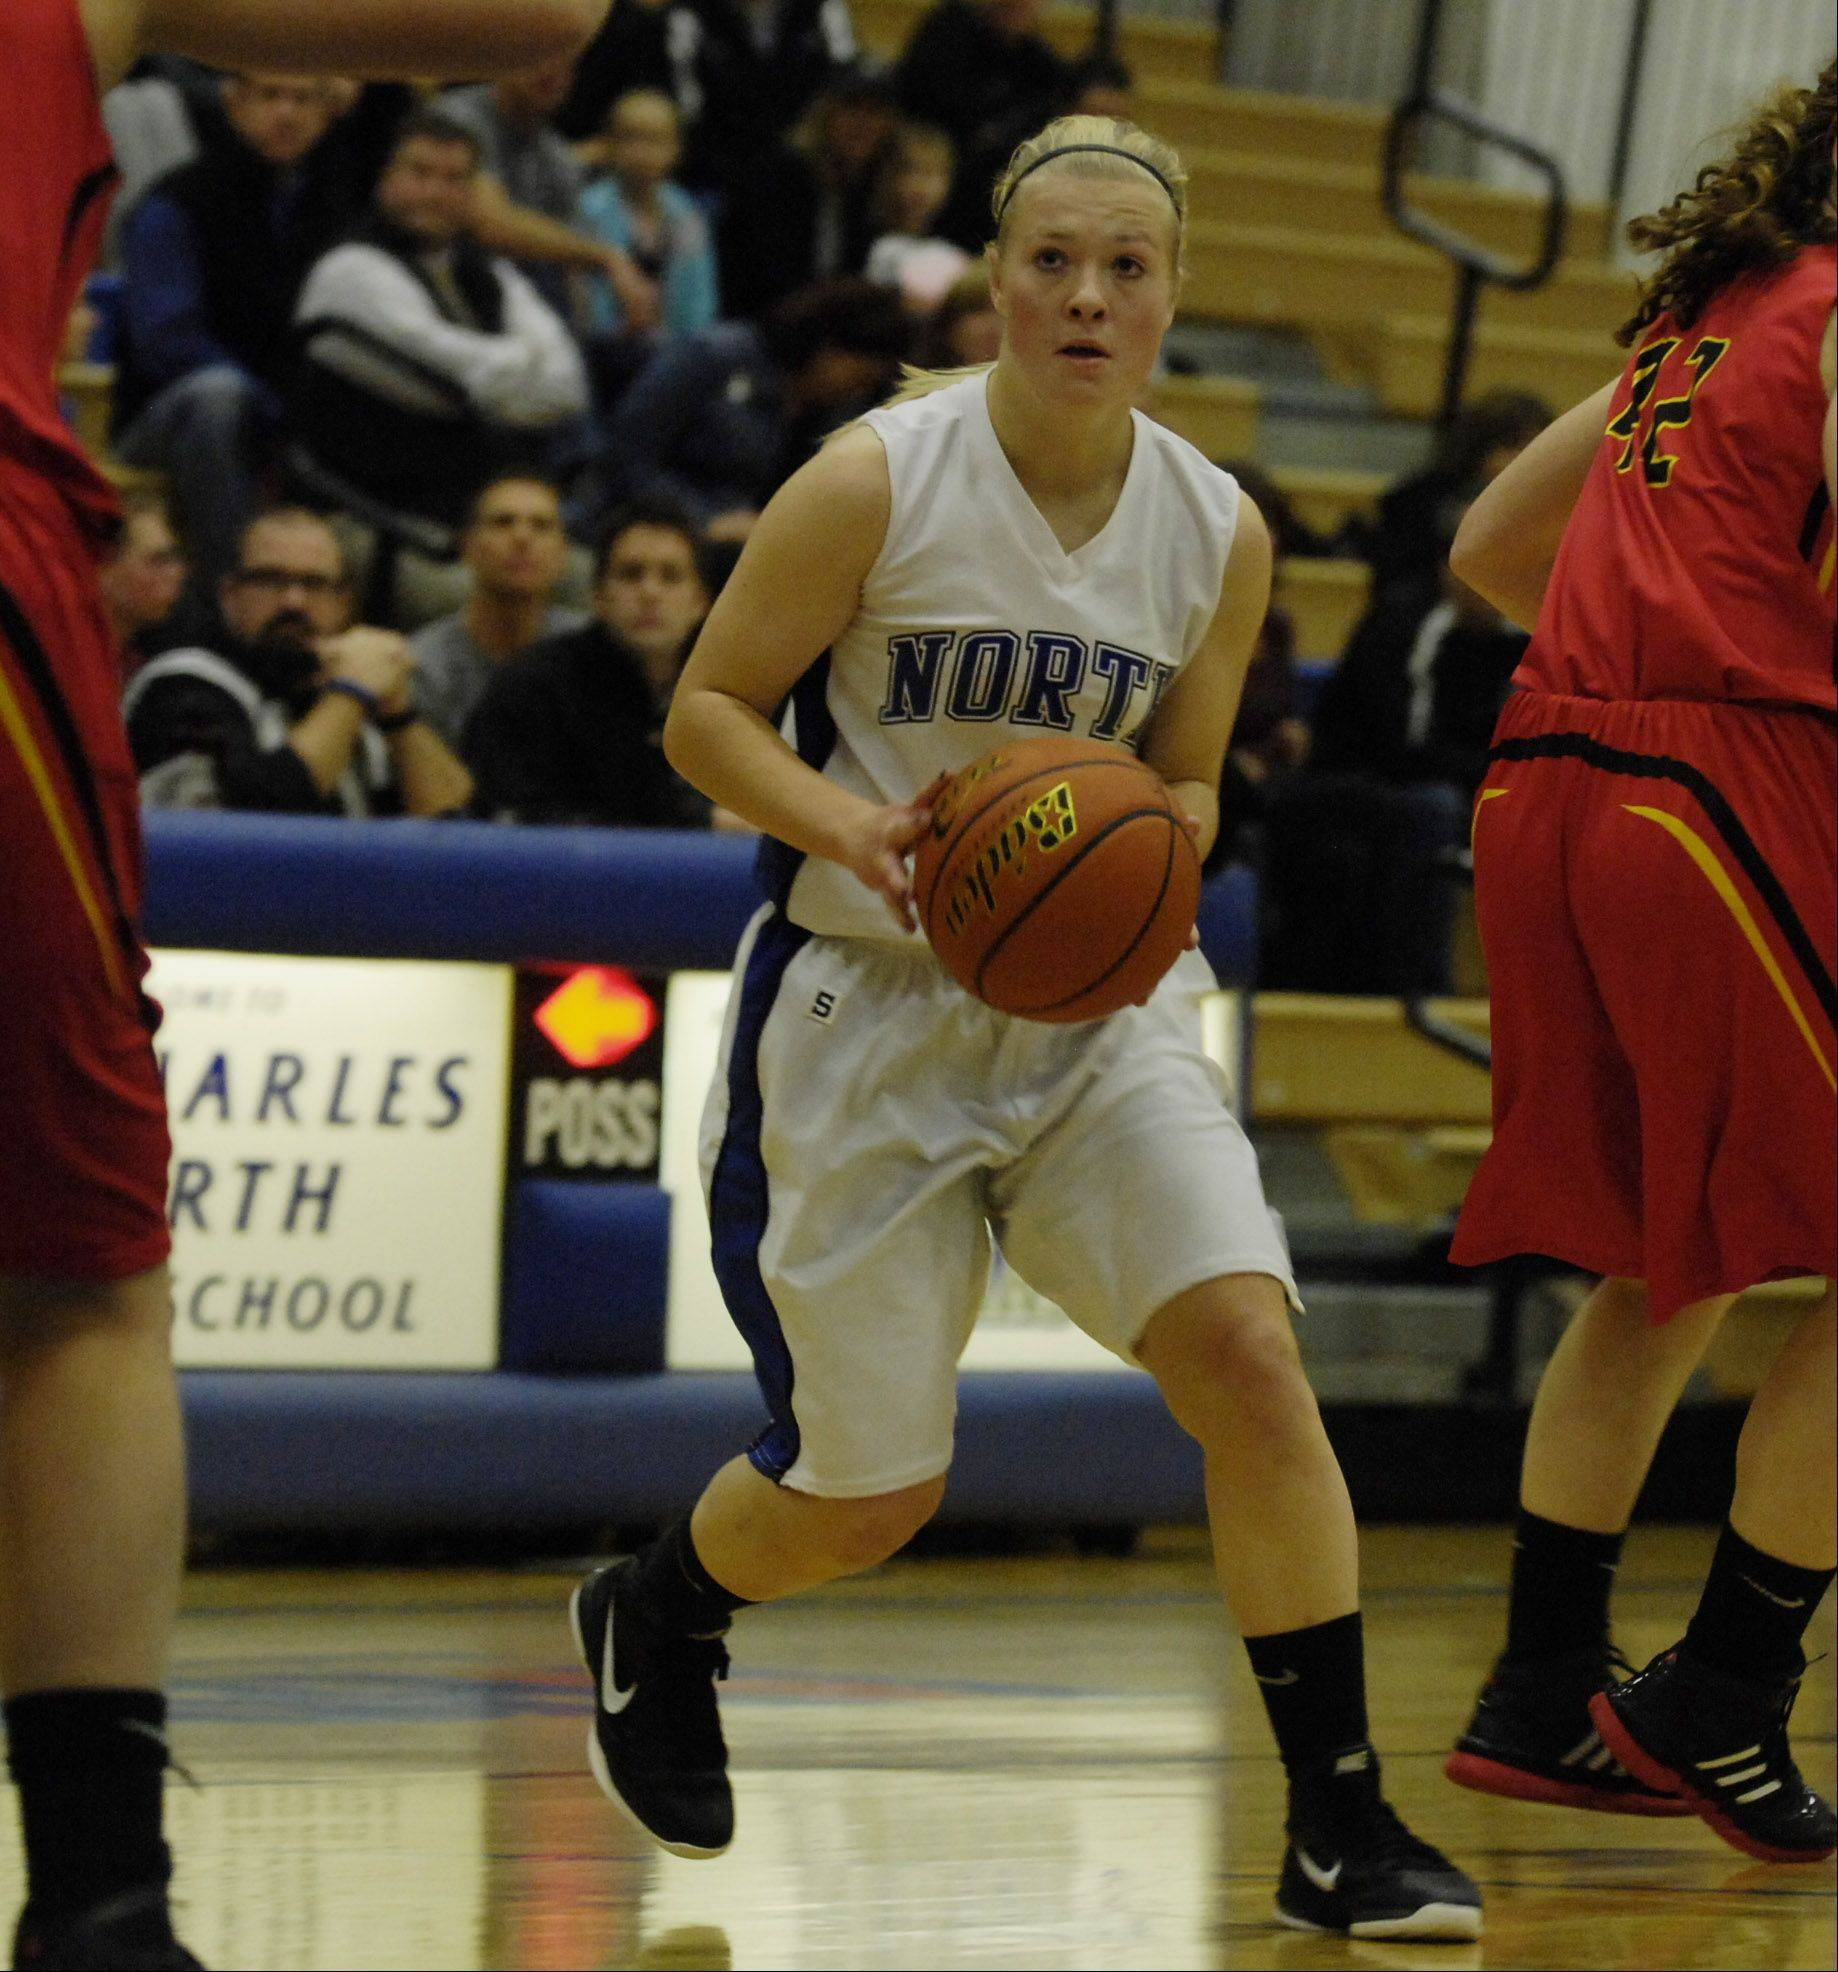 Images from the Batavia vs. St. Charles North girls basketball game Wednesday, November 30, 2011.